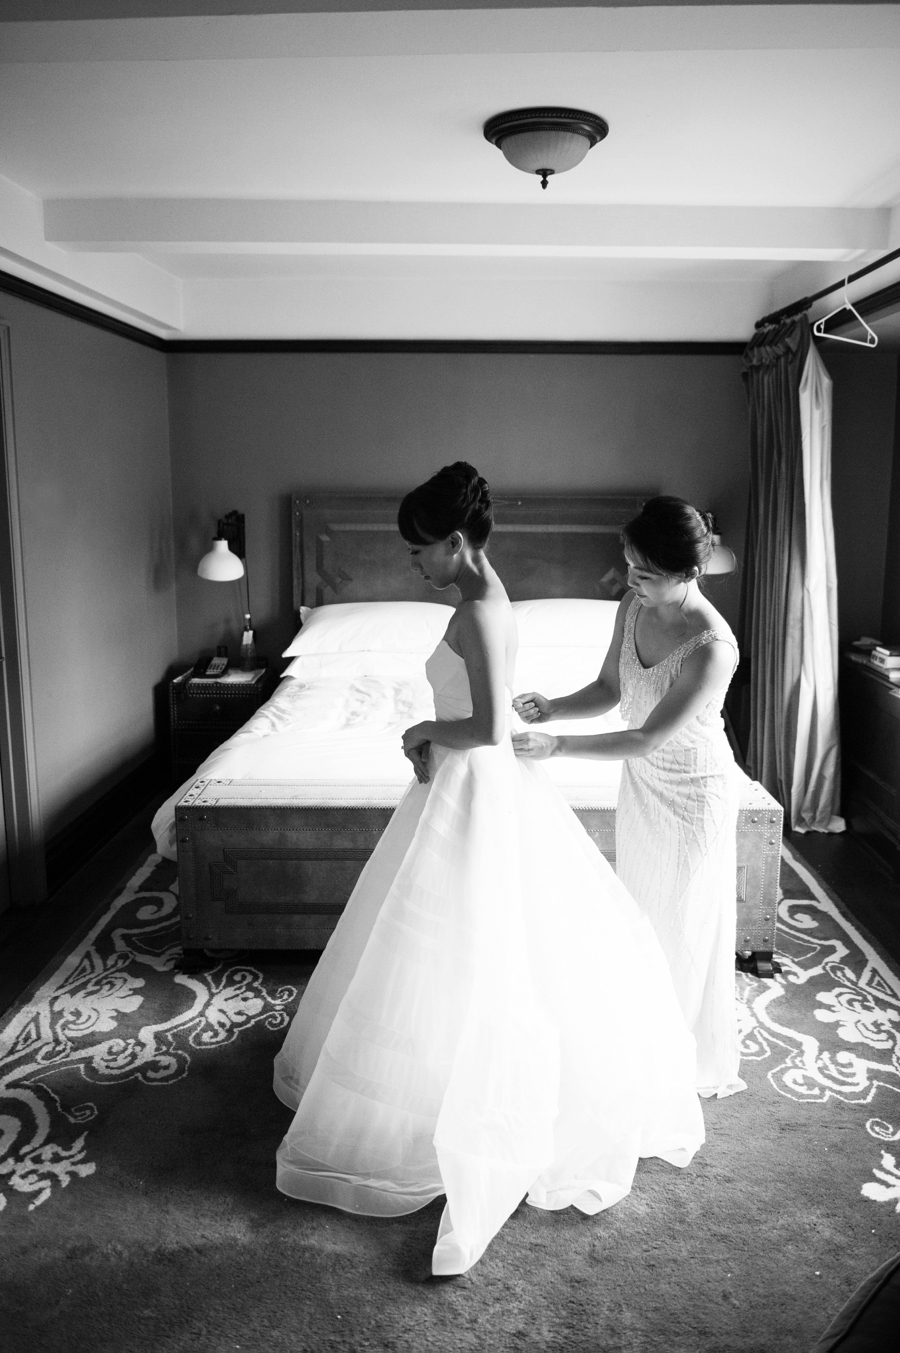 Gramercy_Park_Hotel_NYC_Wedding_KM_006.jpg